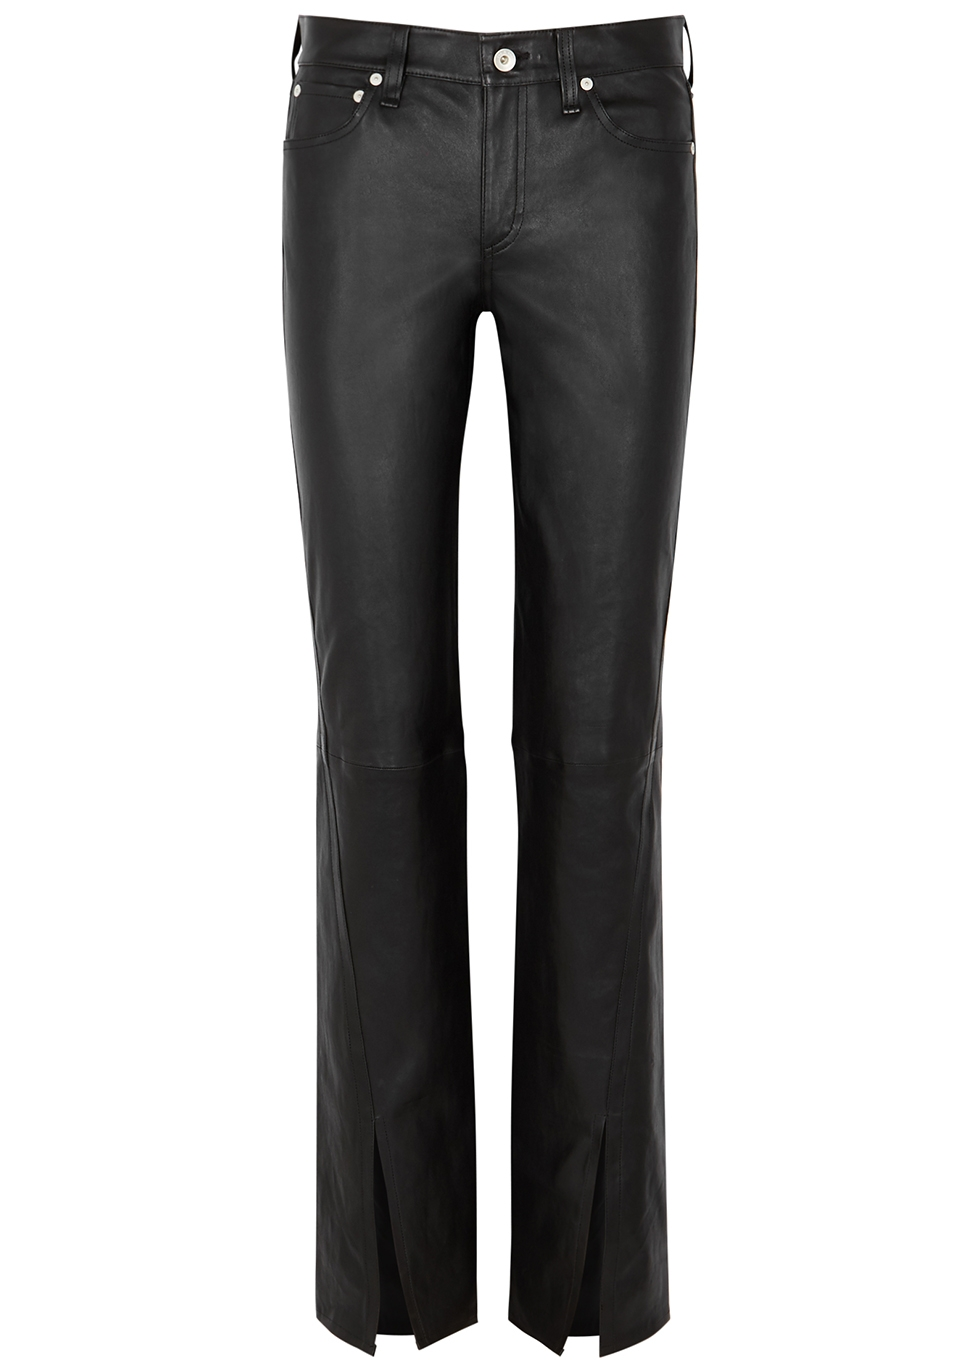 Cate black flared leather trousers